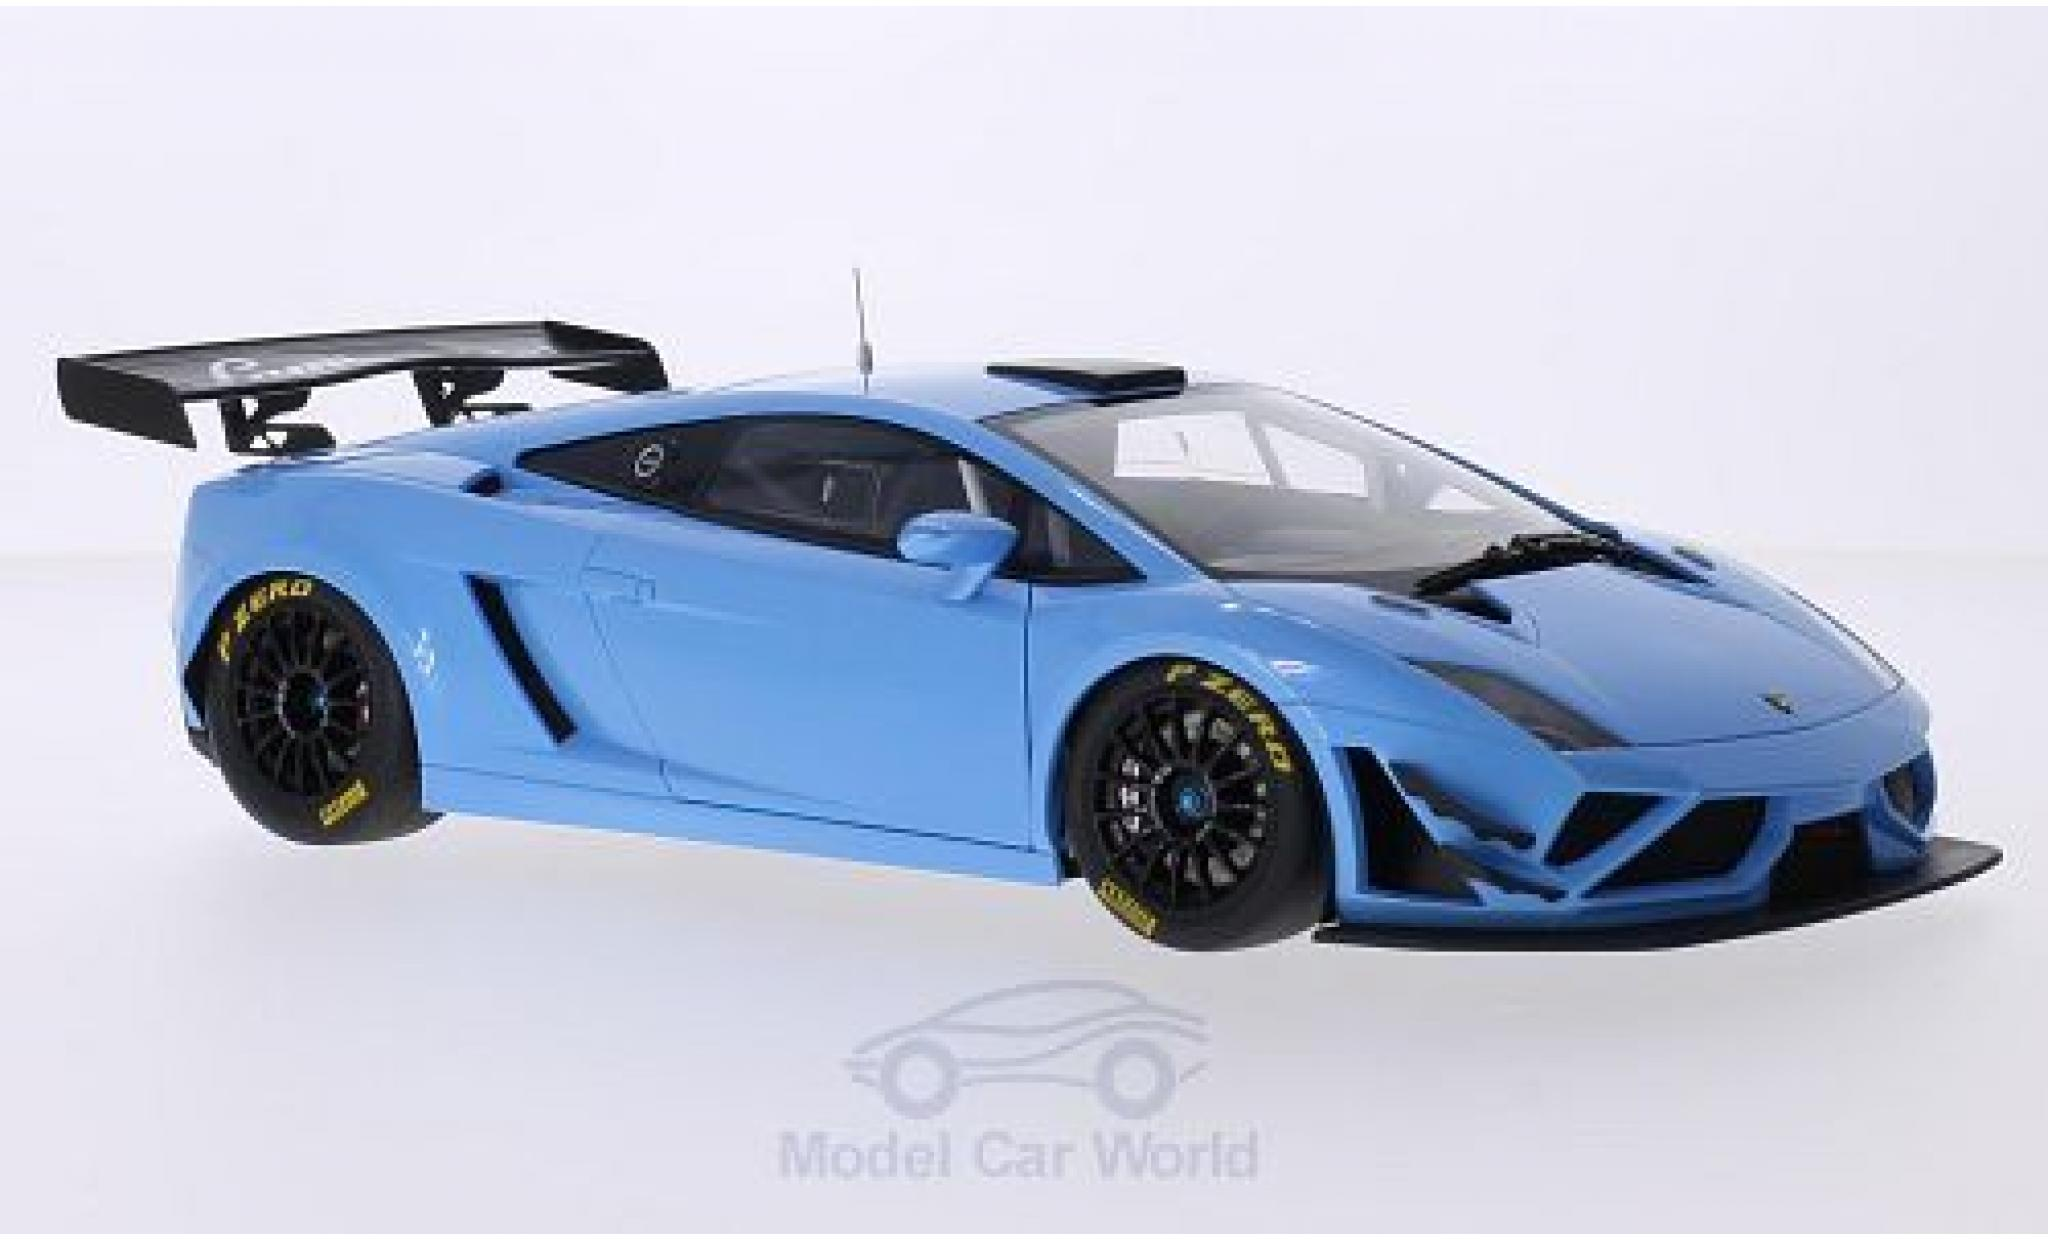 Lamborghini Gallardo 1/18 AUTOart GT3 FL2 metallic-hellblue 2013 Plain Body Version